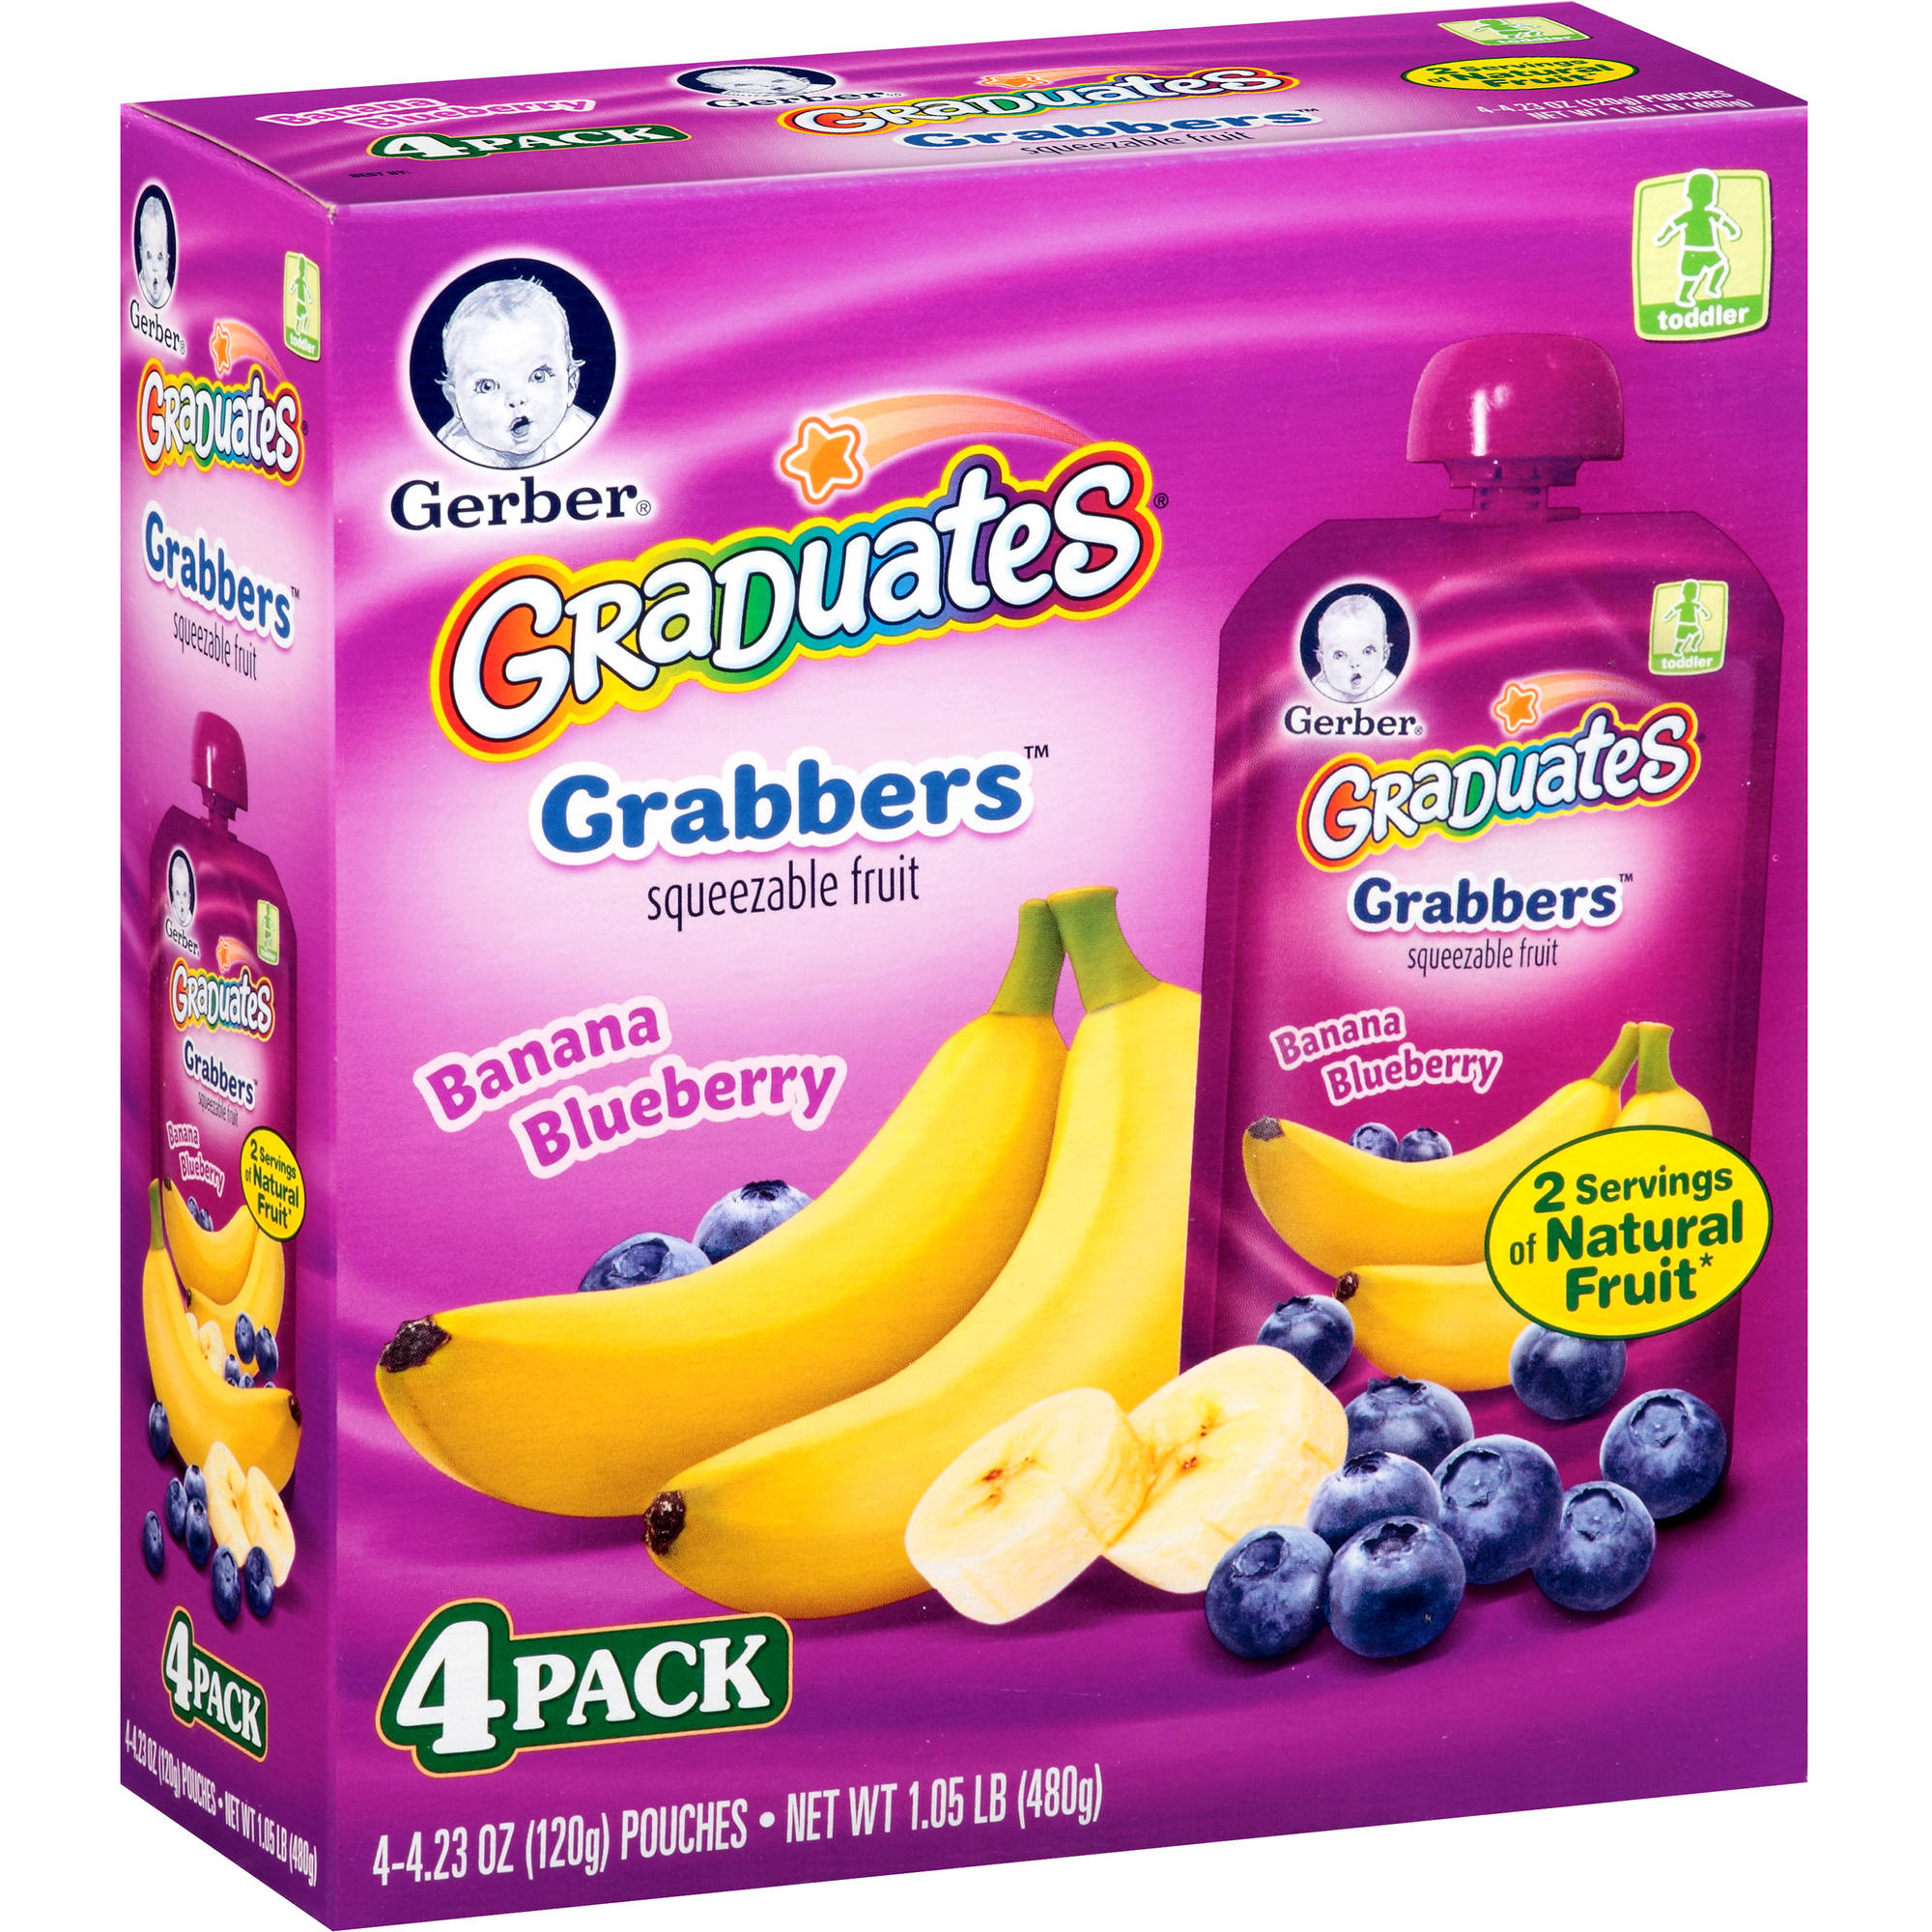 Gerber Graduates Grabbers Squeezable Fruit Banana Blueberry, 4.23 Ounce Pouch, 4 Count